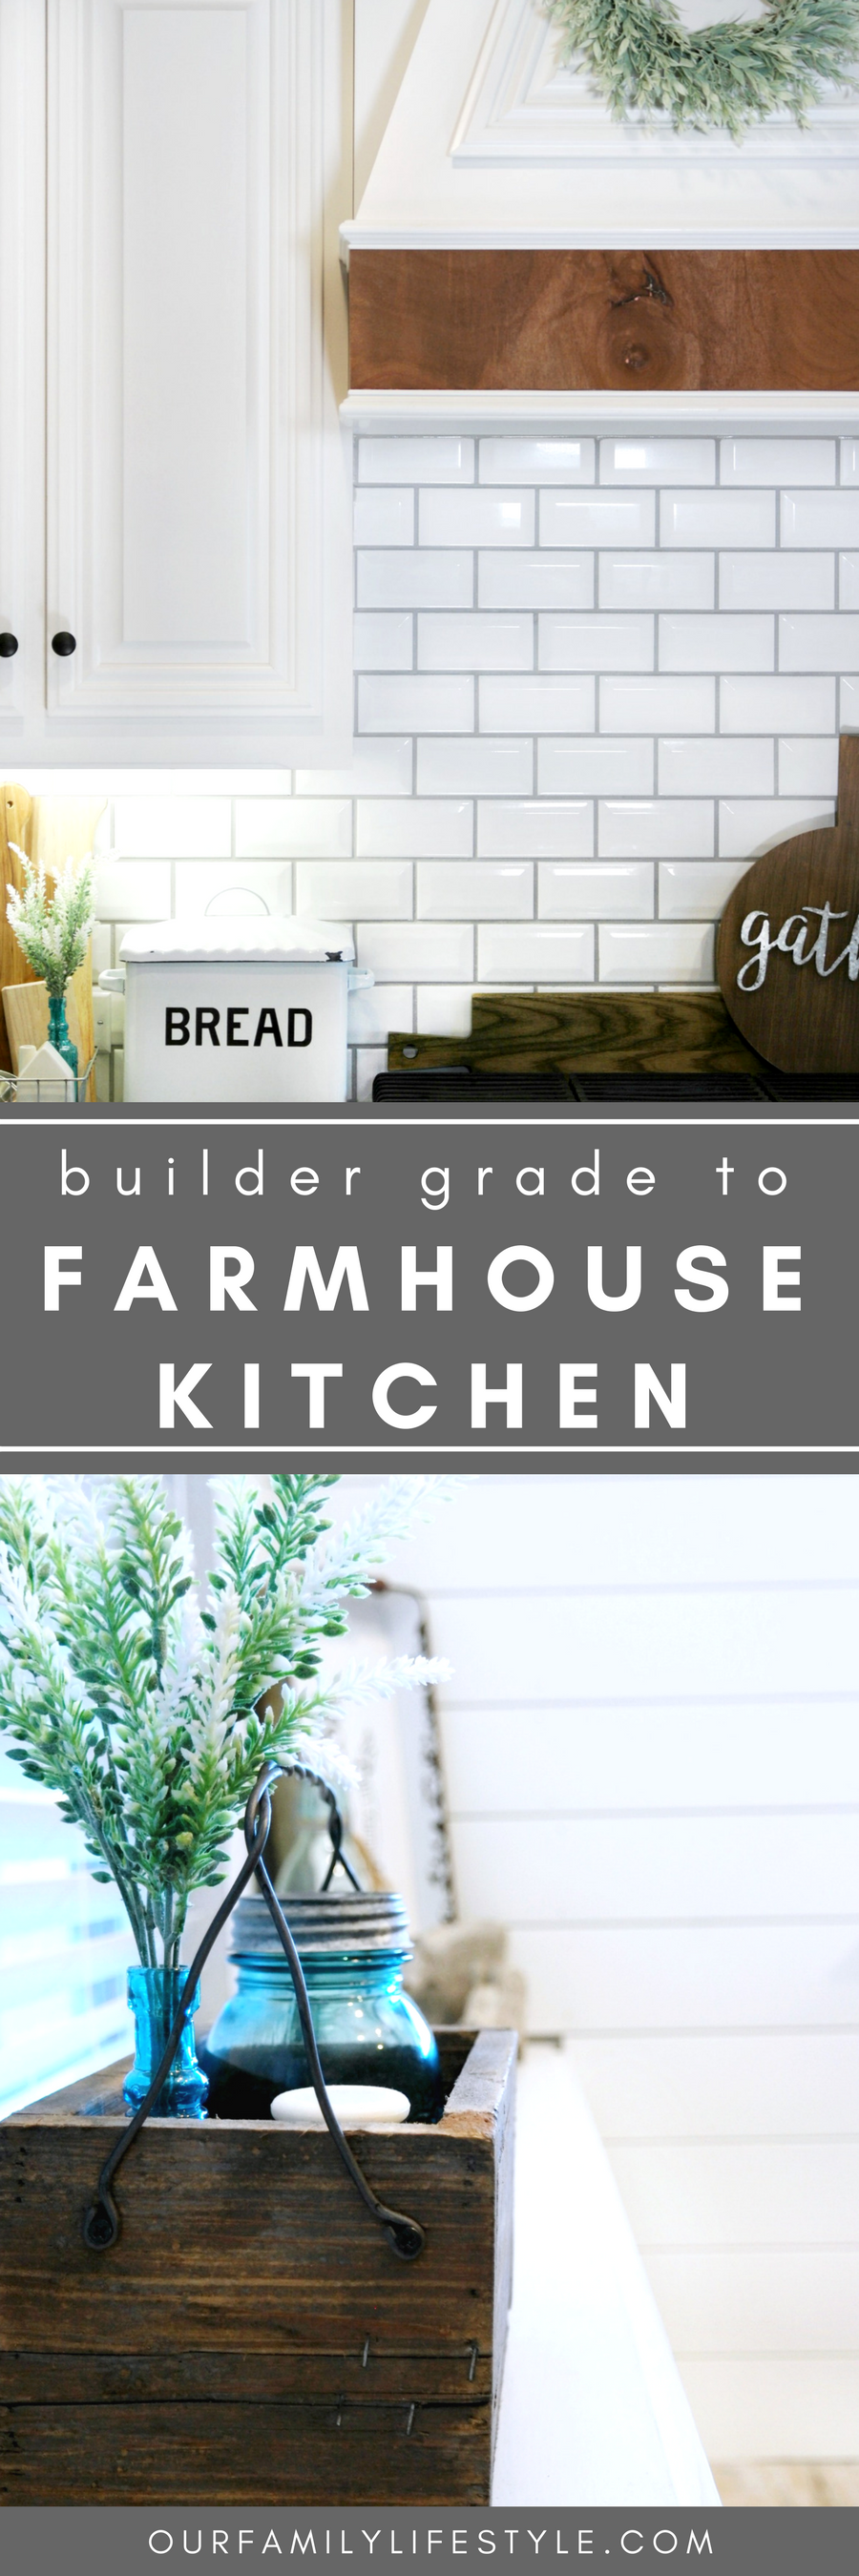 Going from Builder Grade to Farmhouse Kitchen; Through a partnership with The Home Depot, we've worked diligently to transform our builder grade kitchen to the farmhouse style kitchen we've envisioned.